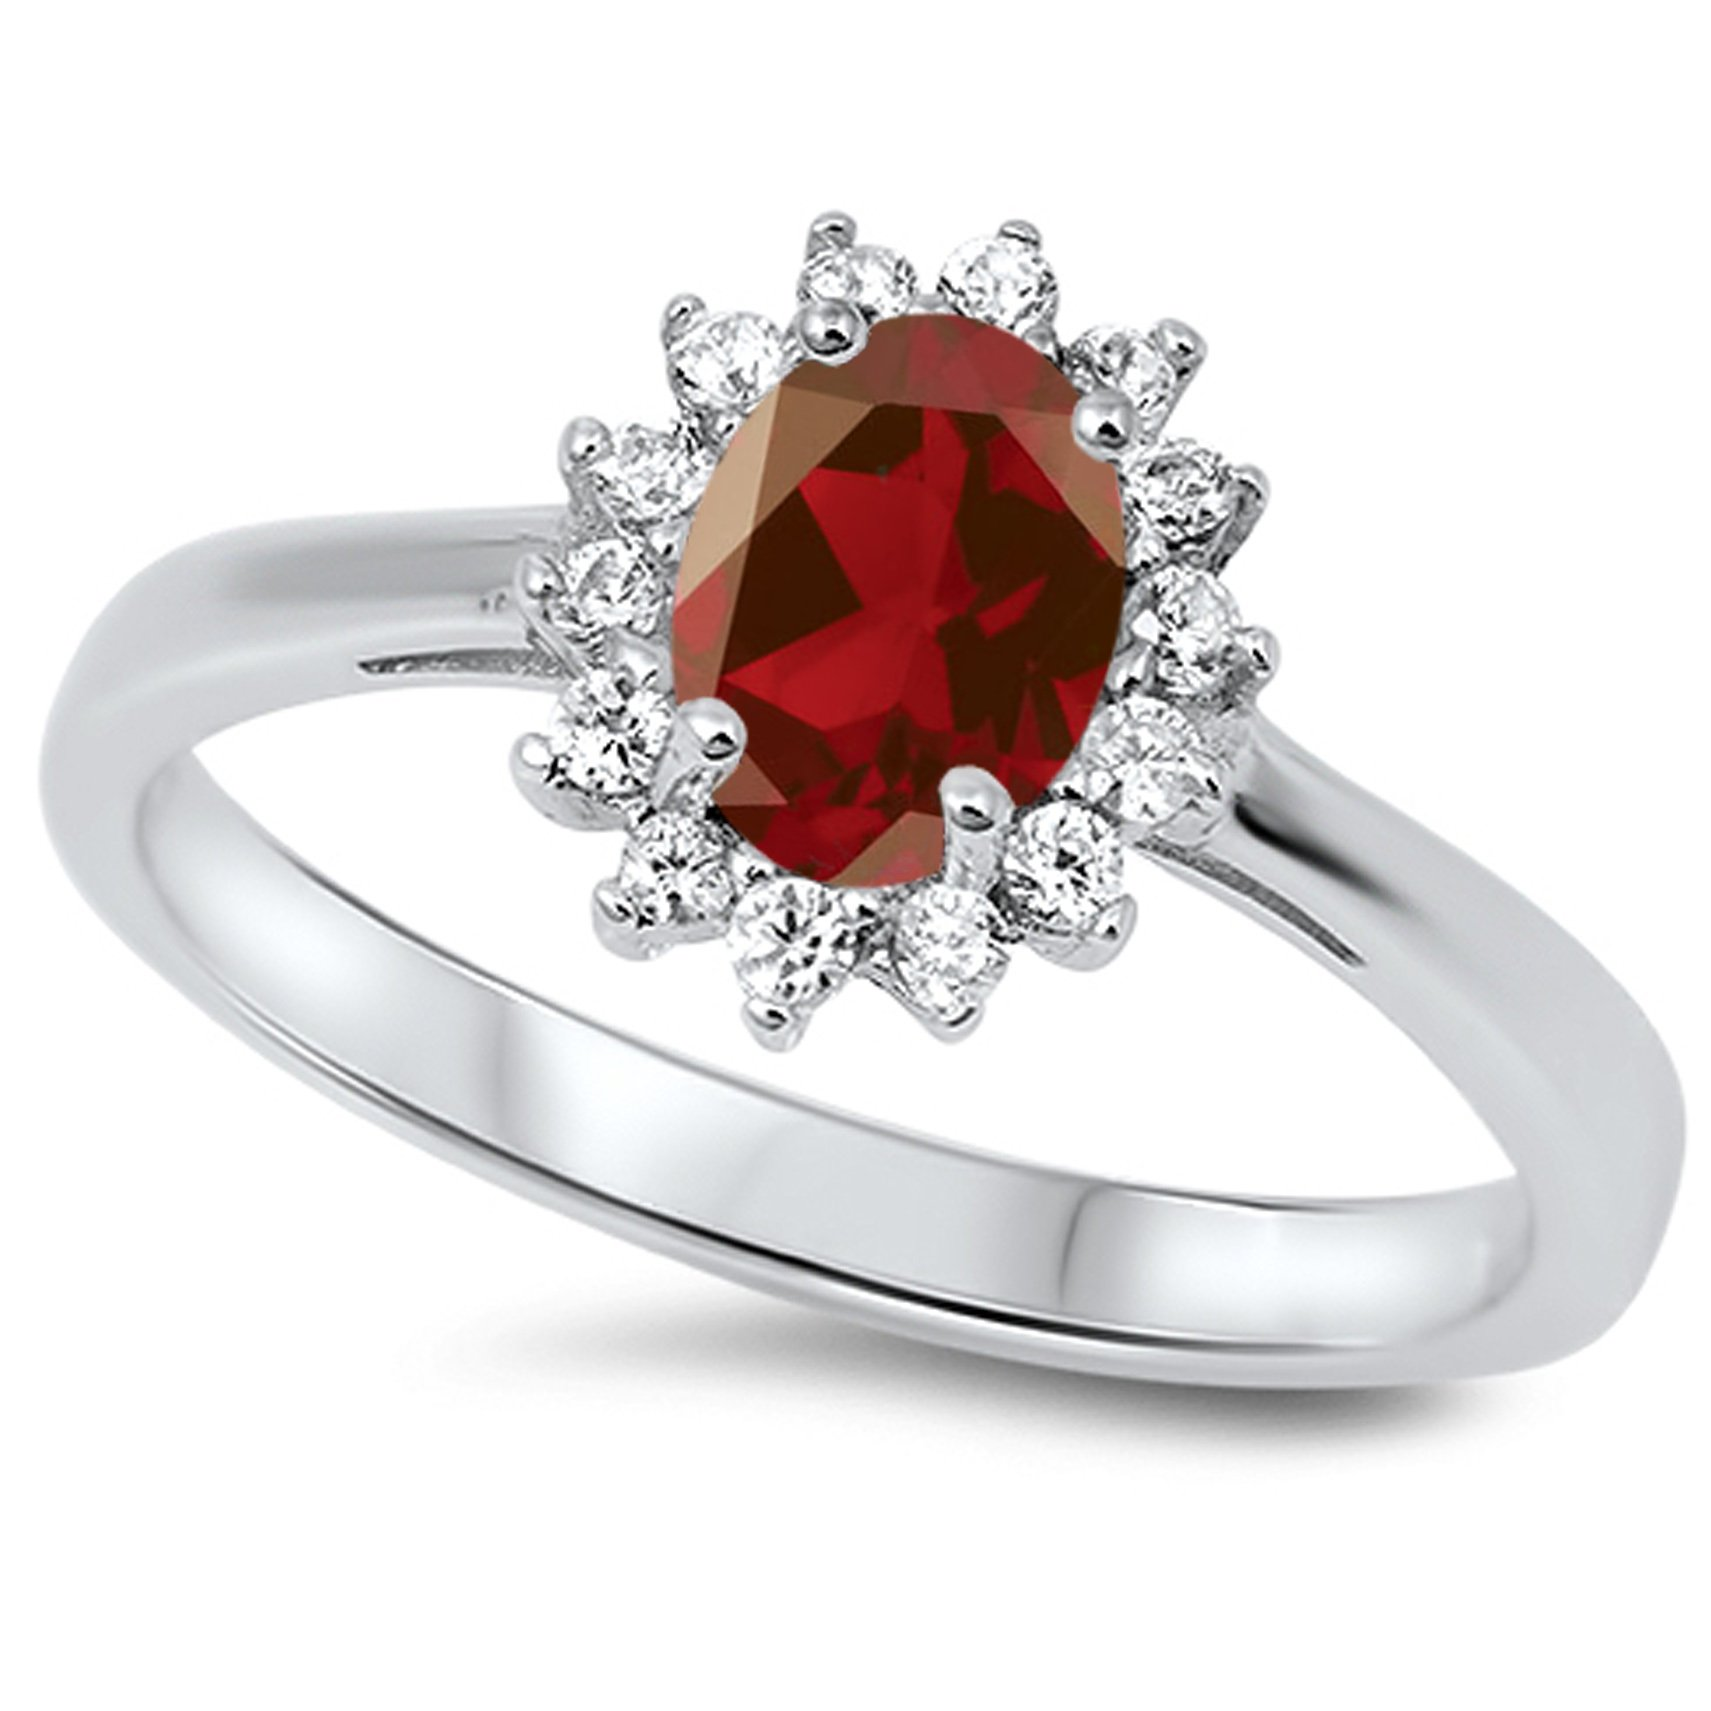 925 Sterling Silver Faceted Natural Genuine Red Ruby Oval Flower Halo Ring Size 7 by Sac Silver